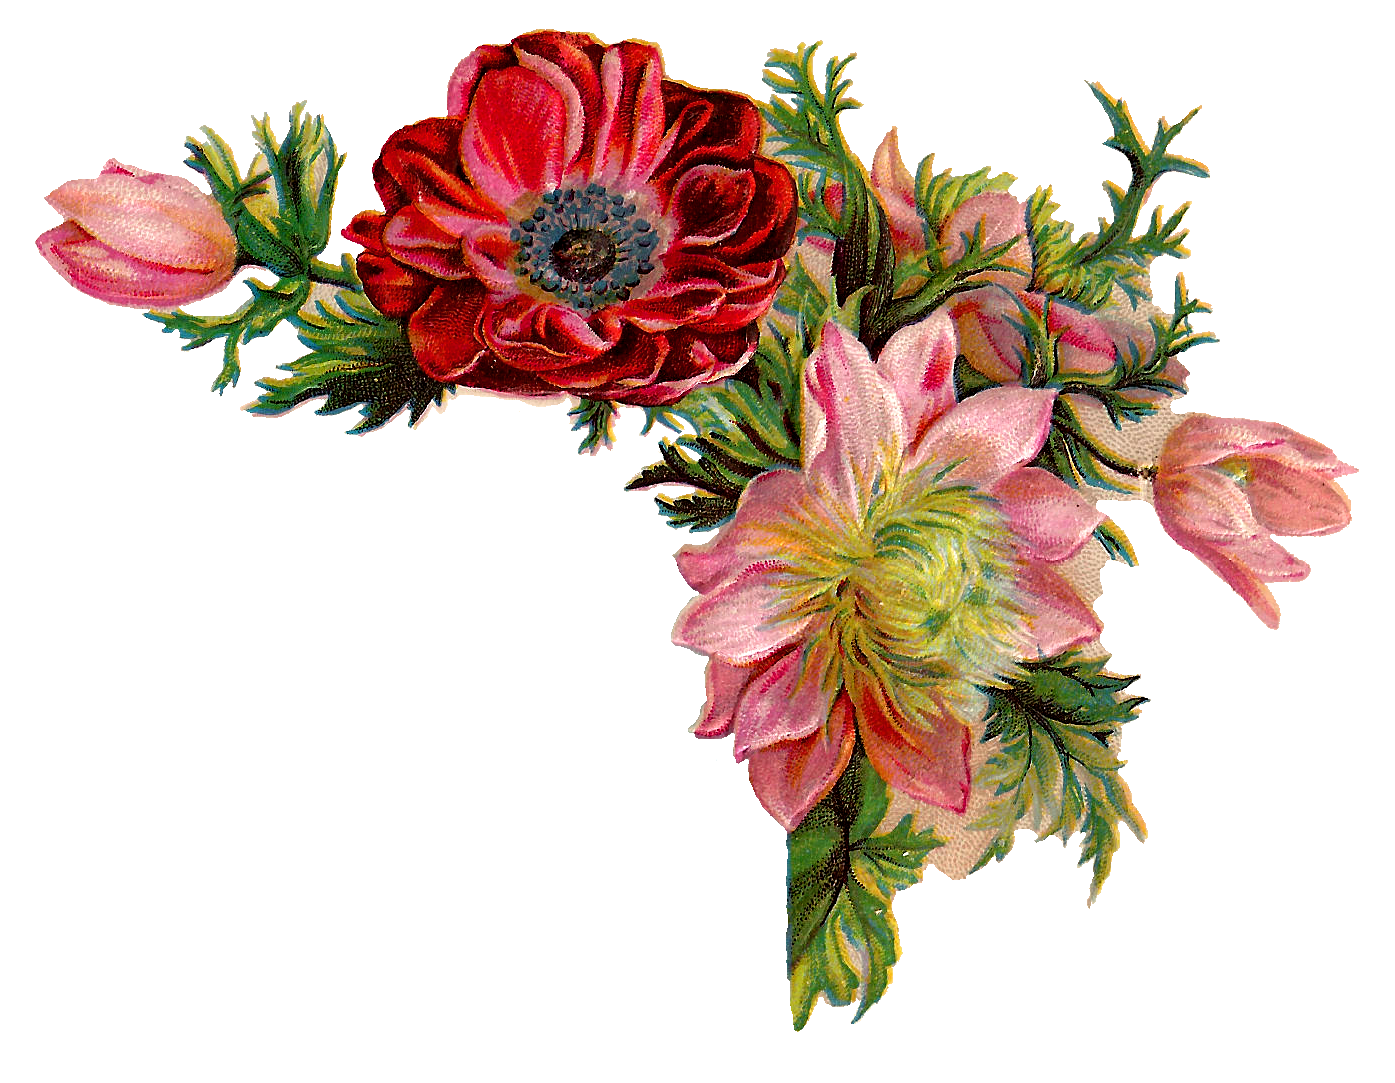 antique images free digital flower images of corner design with red and pink flowers paper clip art ideas paper clip art free